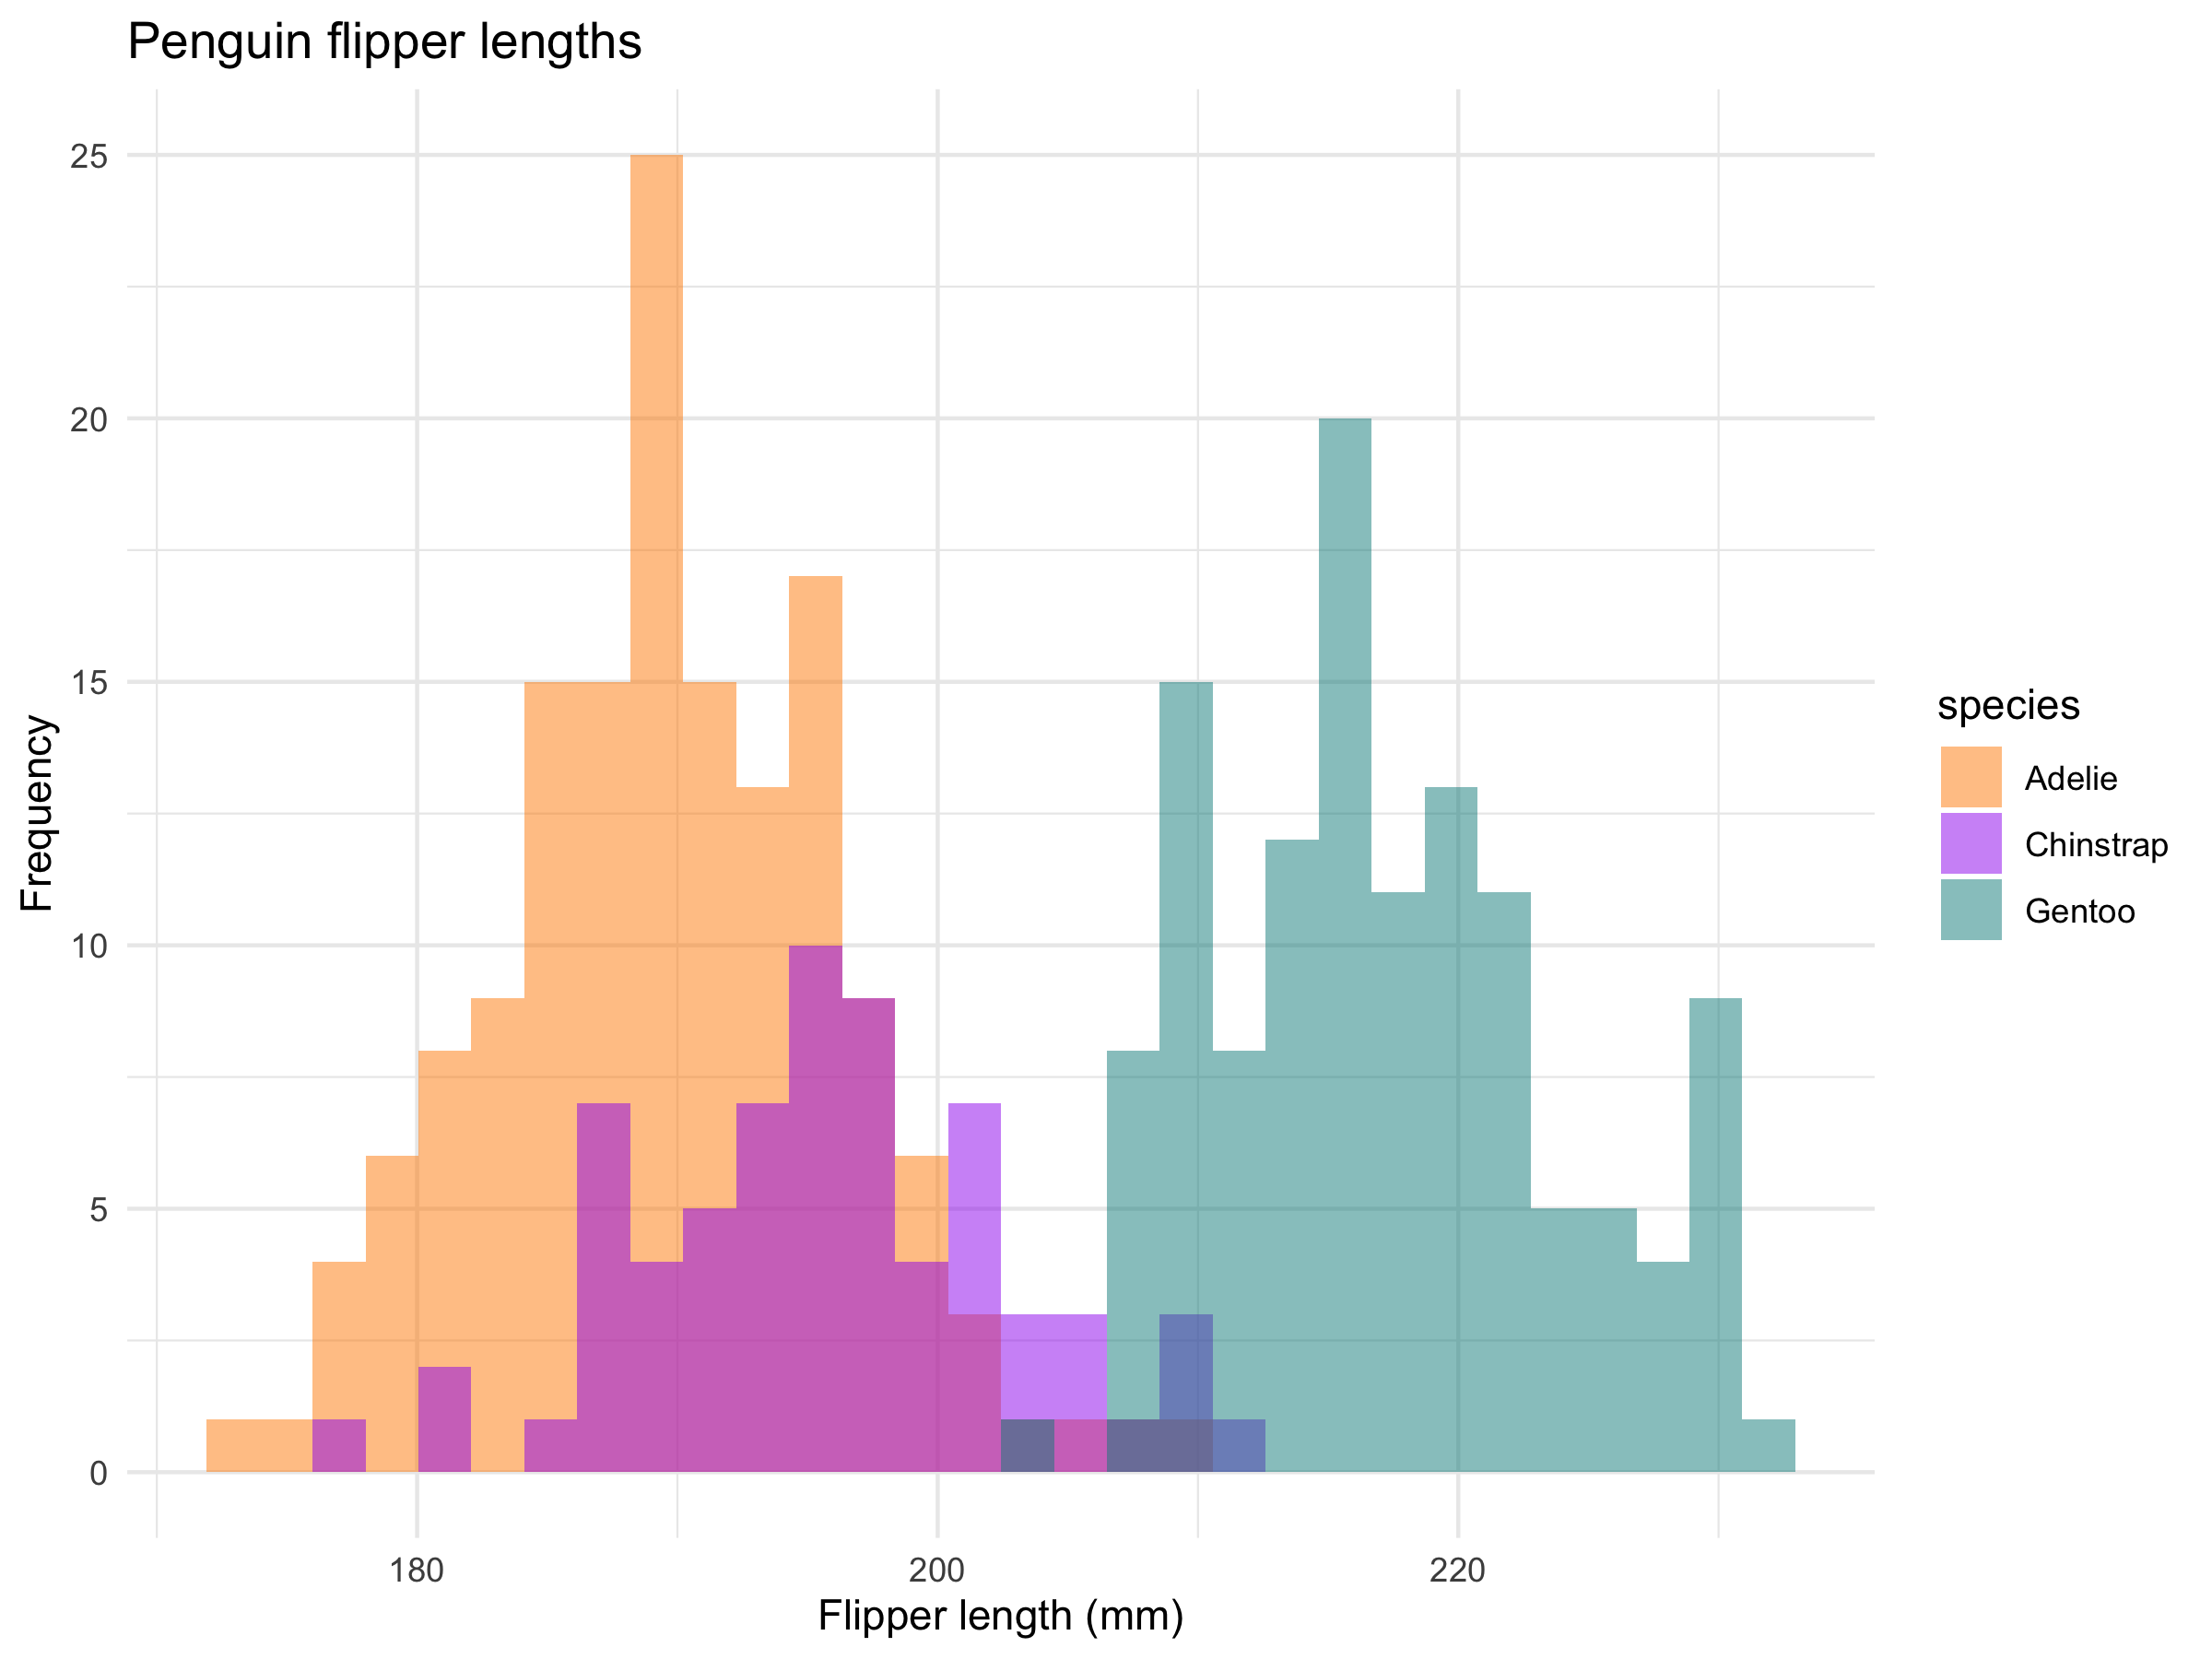 Histogram of penguin flipper lengths colored by species